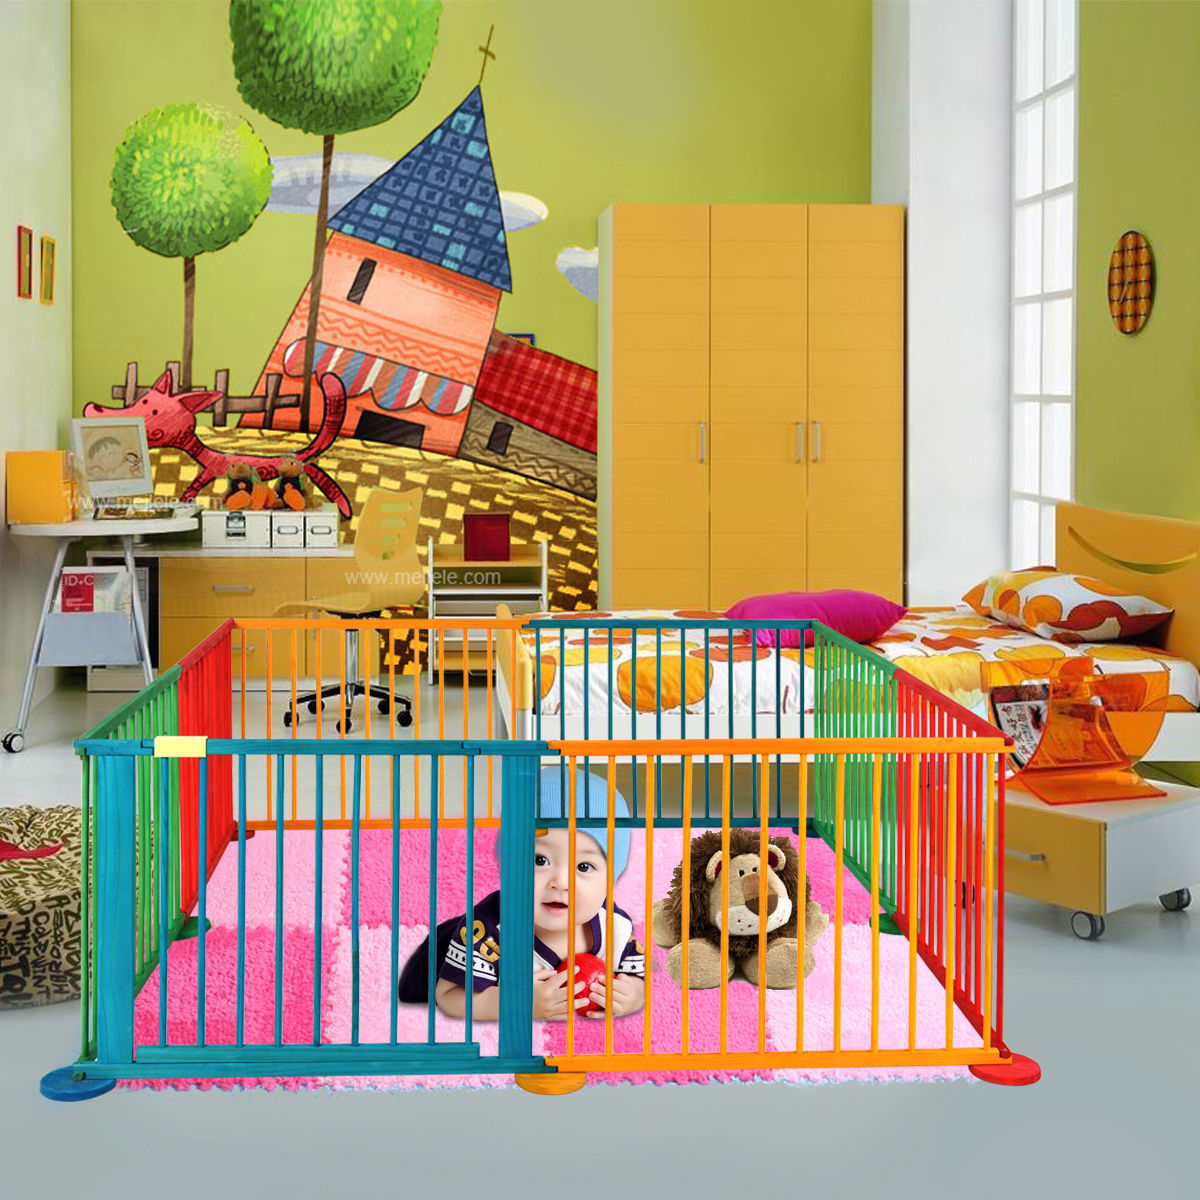 Foldable Wooden Baby Playpen 8 Panel Play Yard Fence Kids